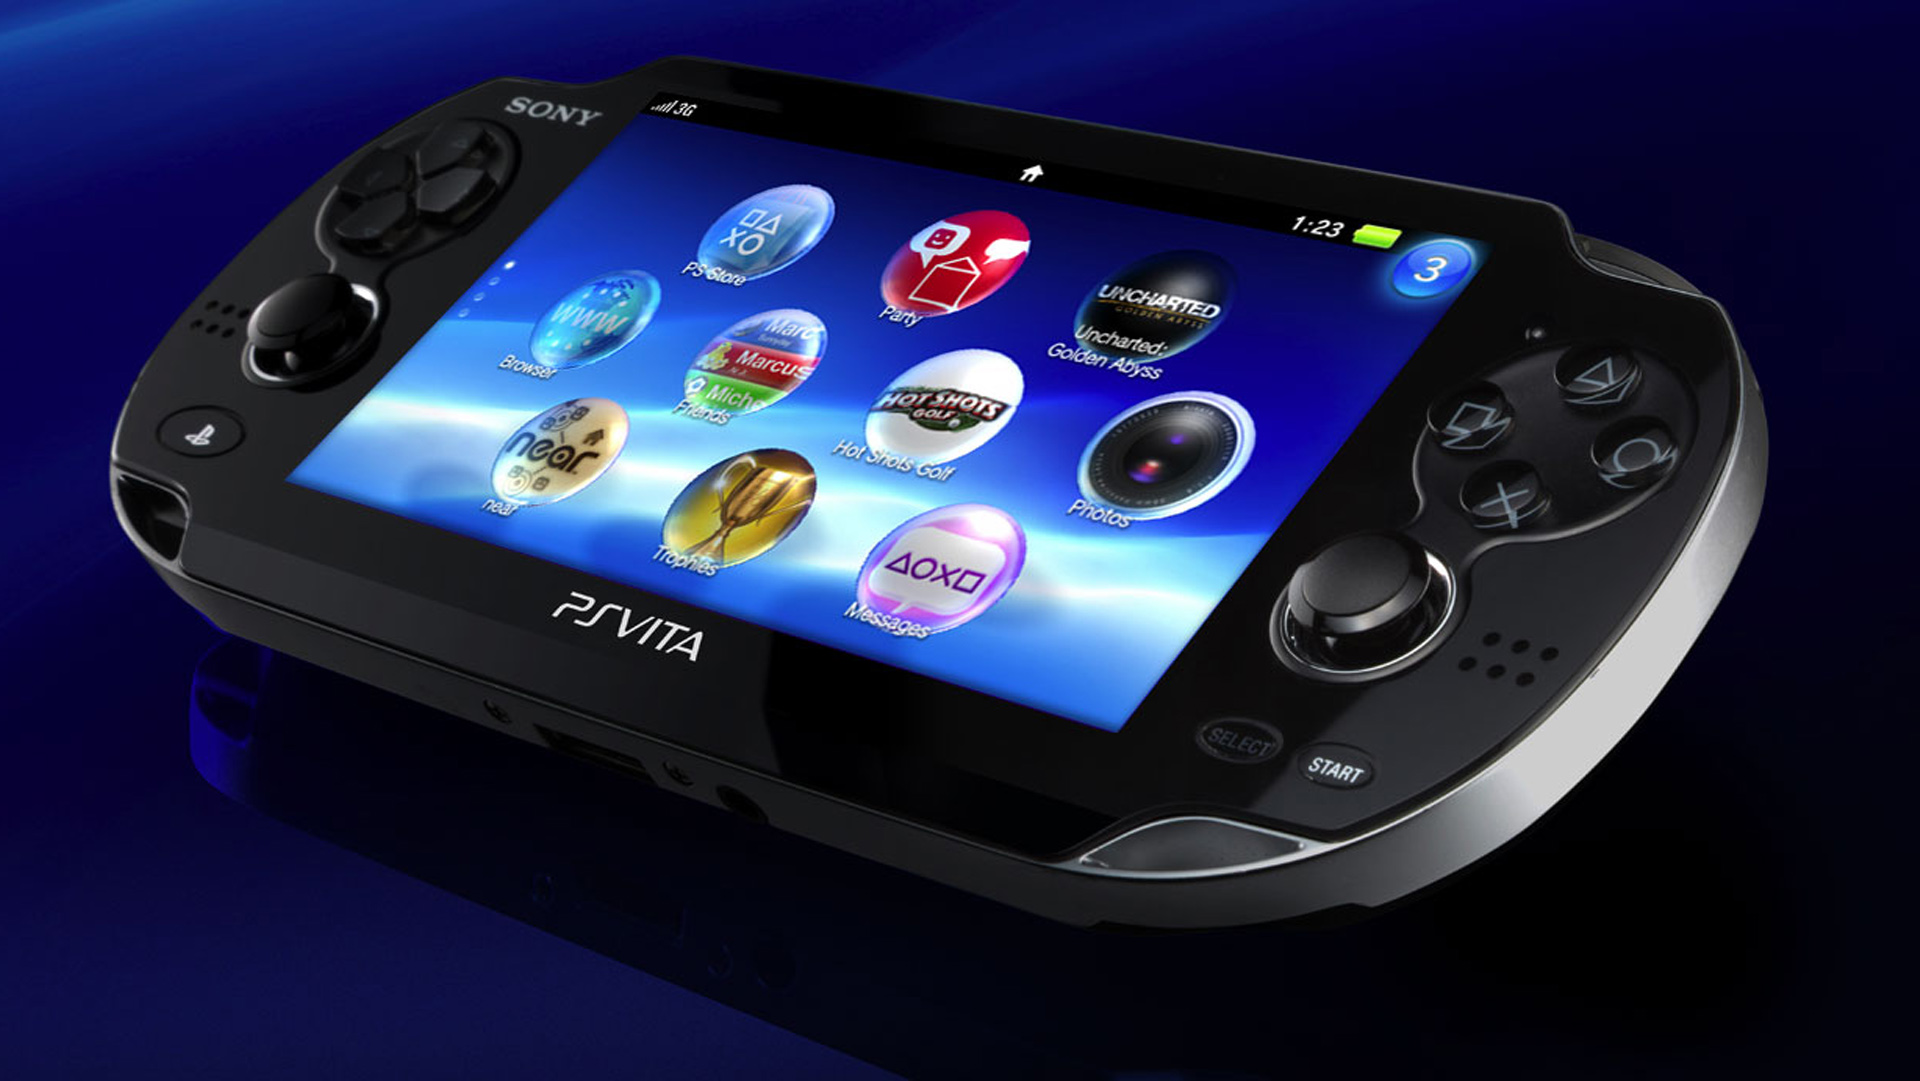 First Party Titles Not Being Developed for PS Vita - Focus Is More on PS4 Now